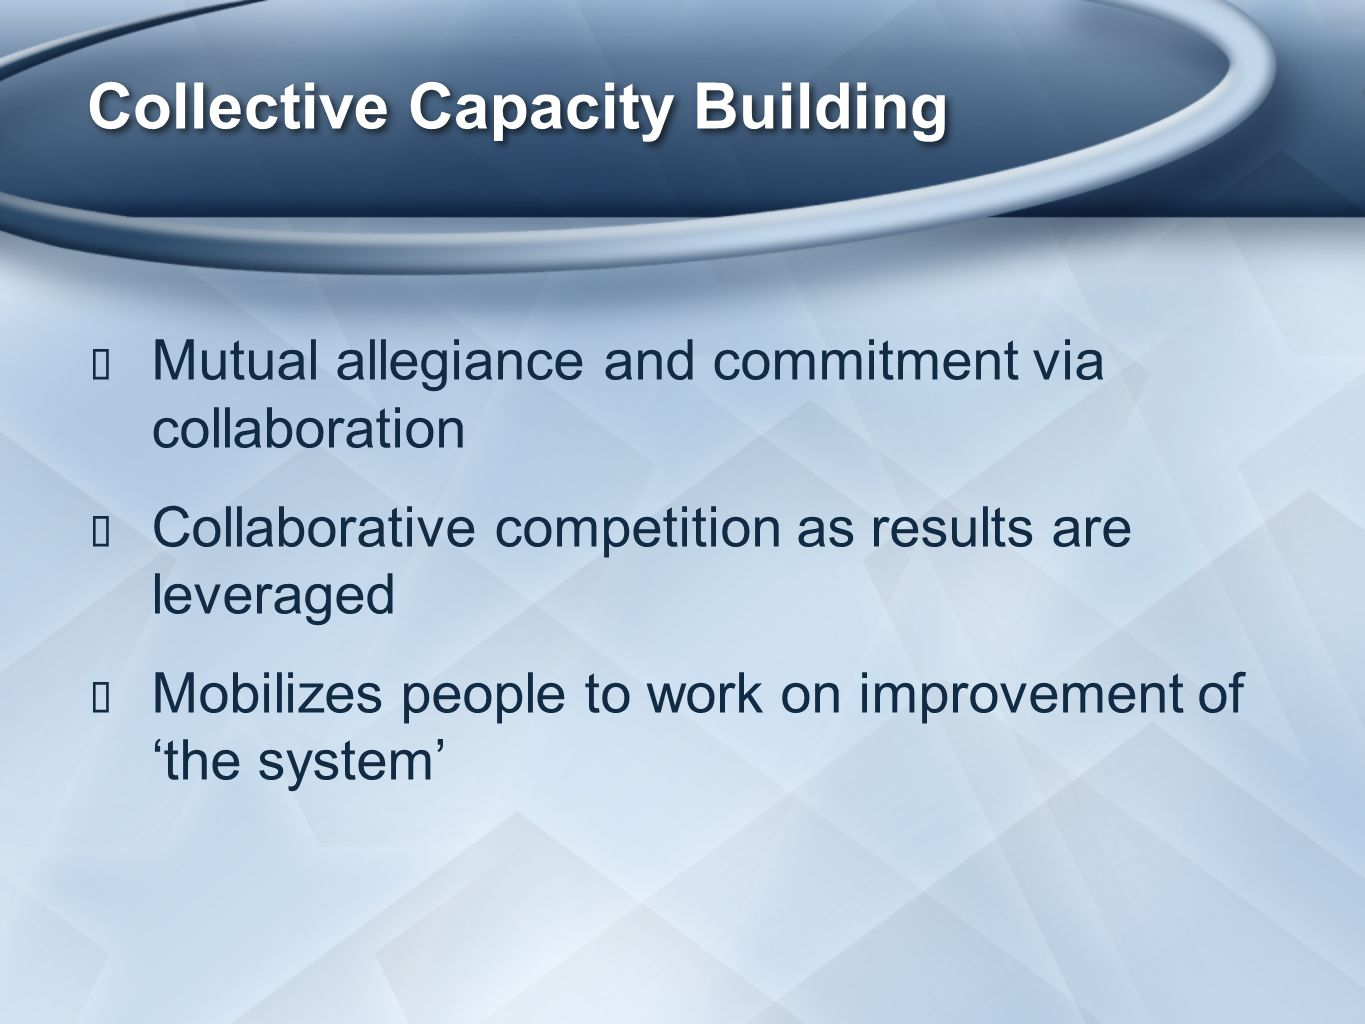 Collective Capacity Building ★ Mutual allegiance and commitment via collaboration ★ Collaborative competition as results are leveraged ★ Mobilizes people to work on improvement of 'the system'